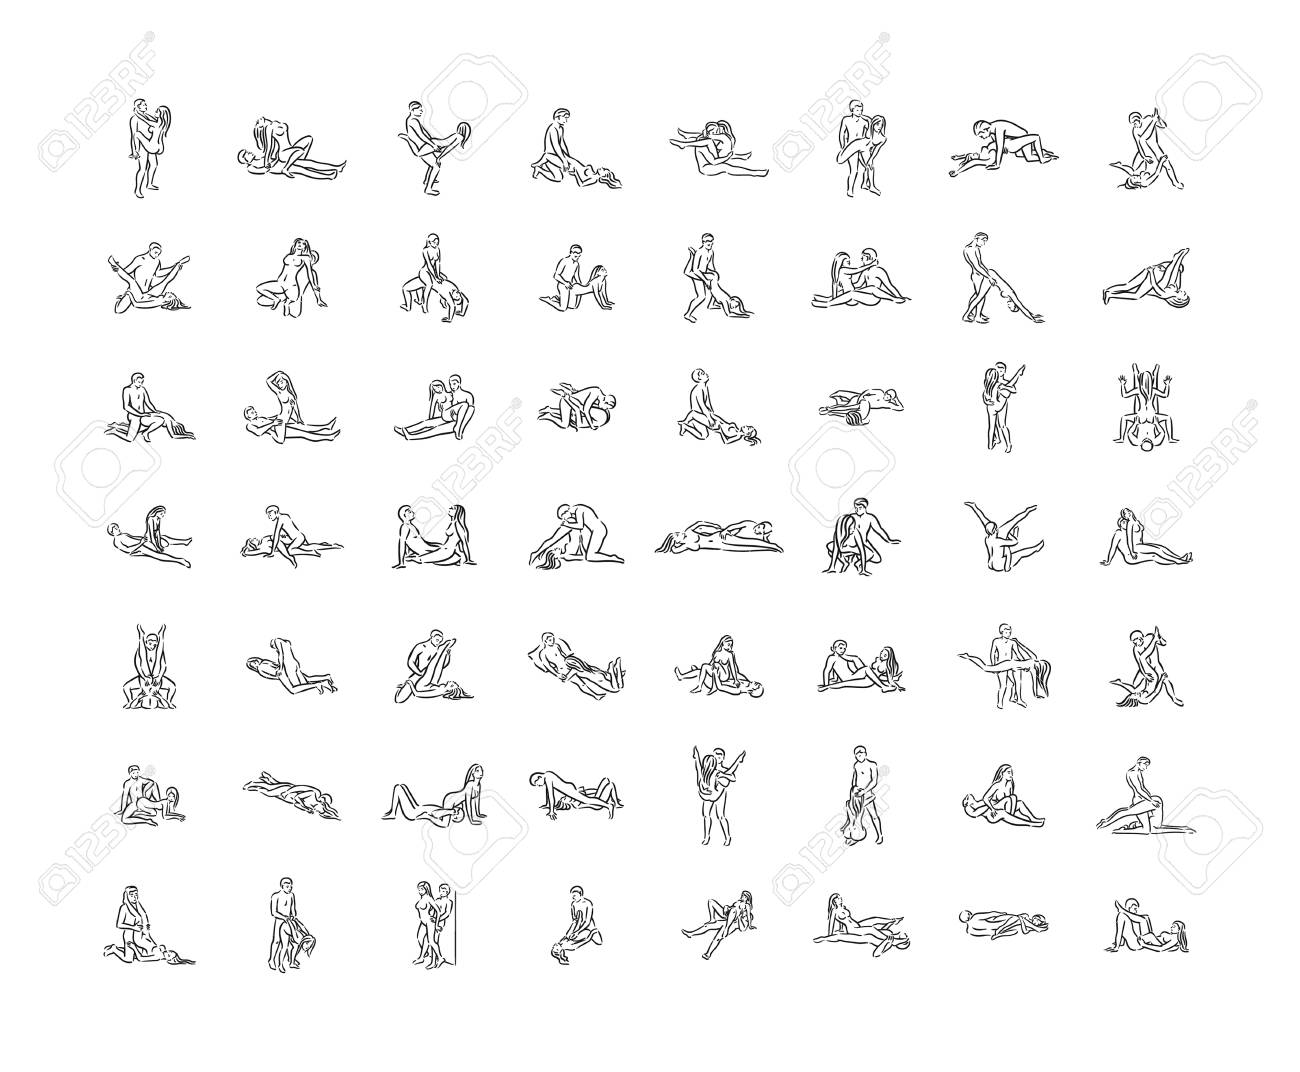 Kama sutra pose. Sex poses illustration of man and woman on white background - 117807194